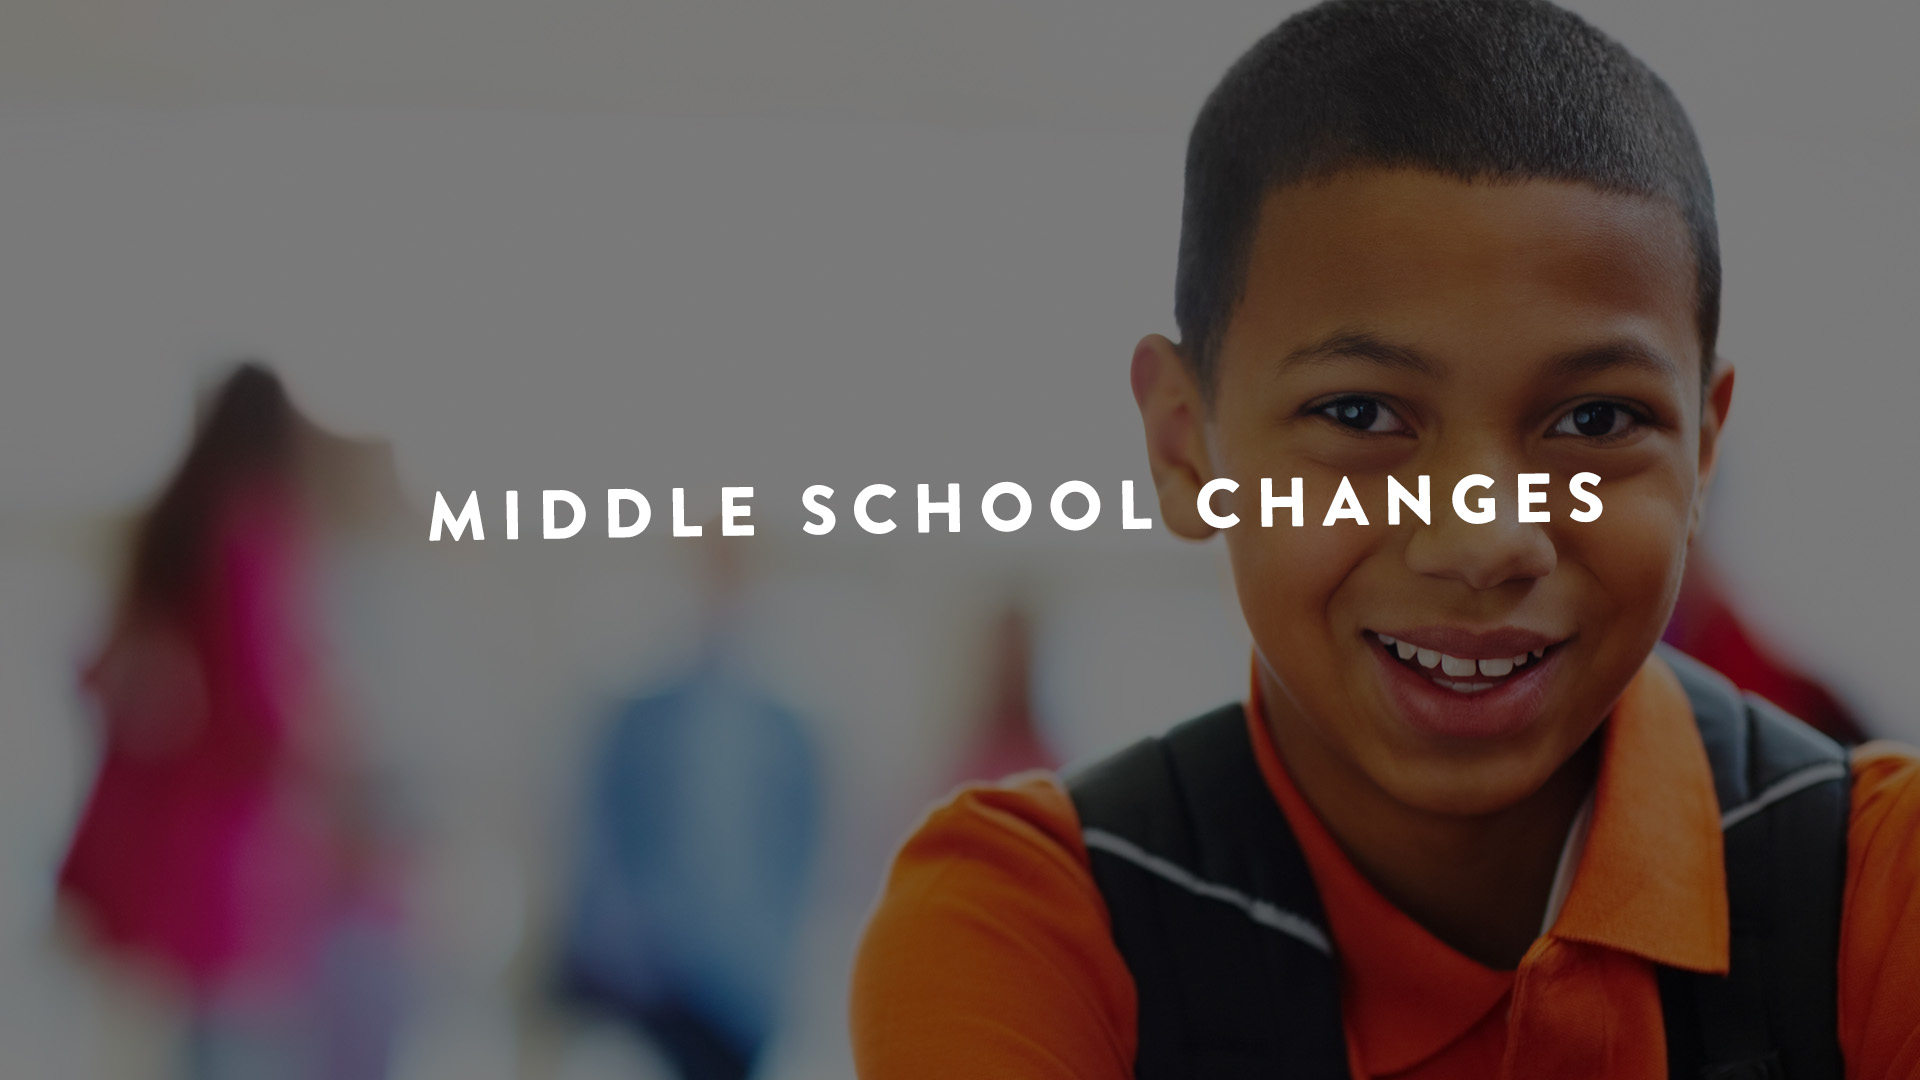 Middle School Changes